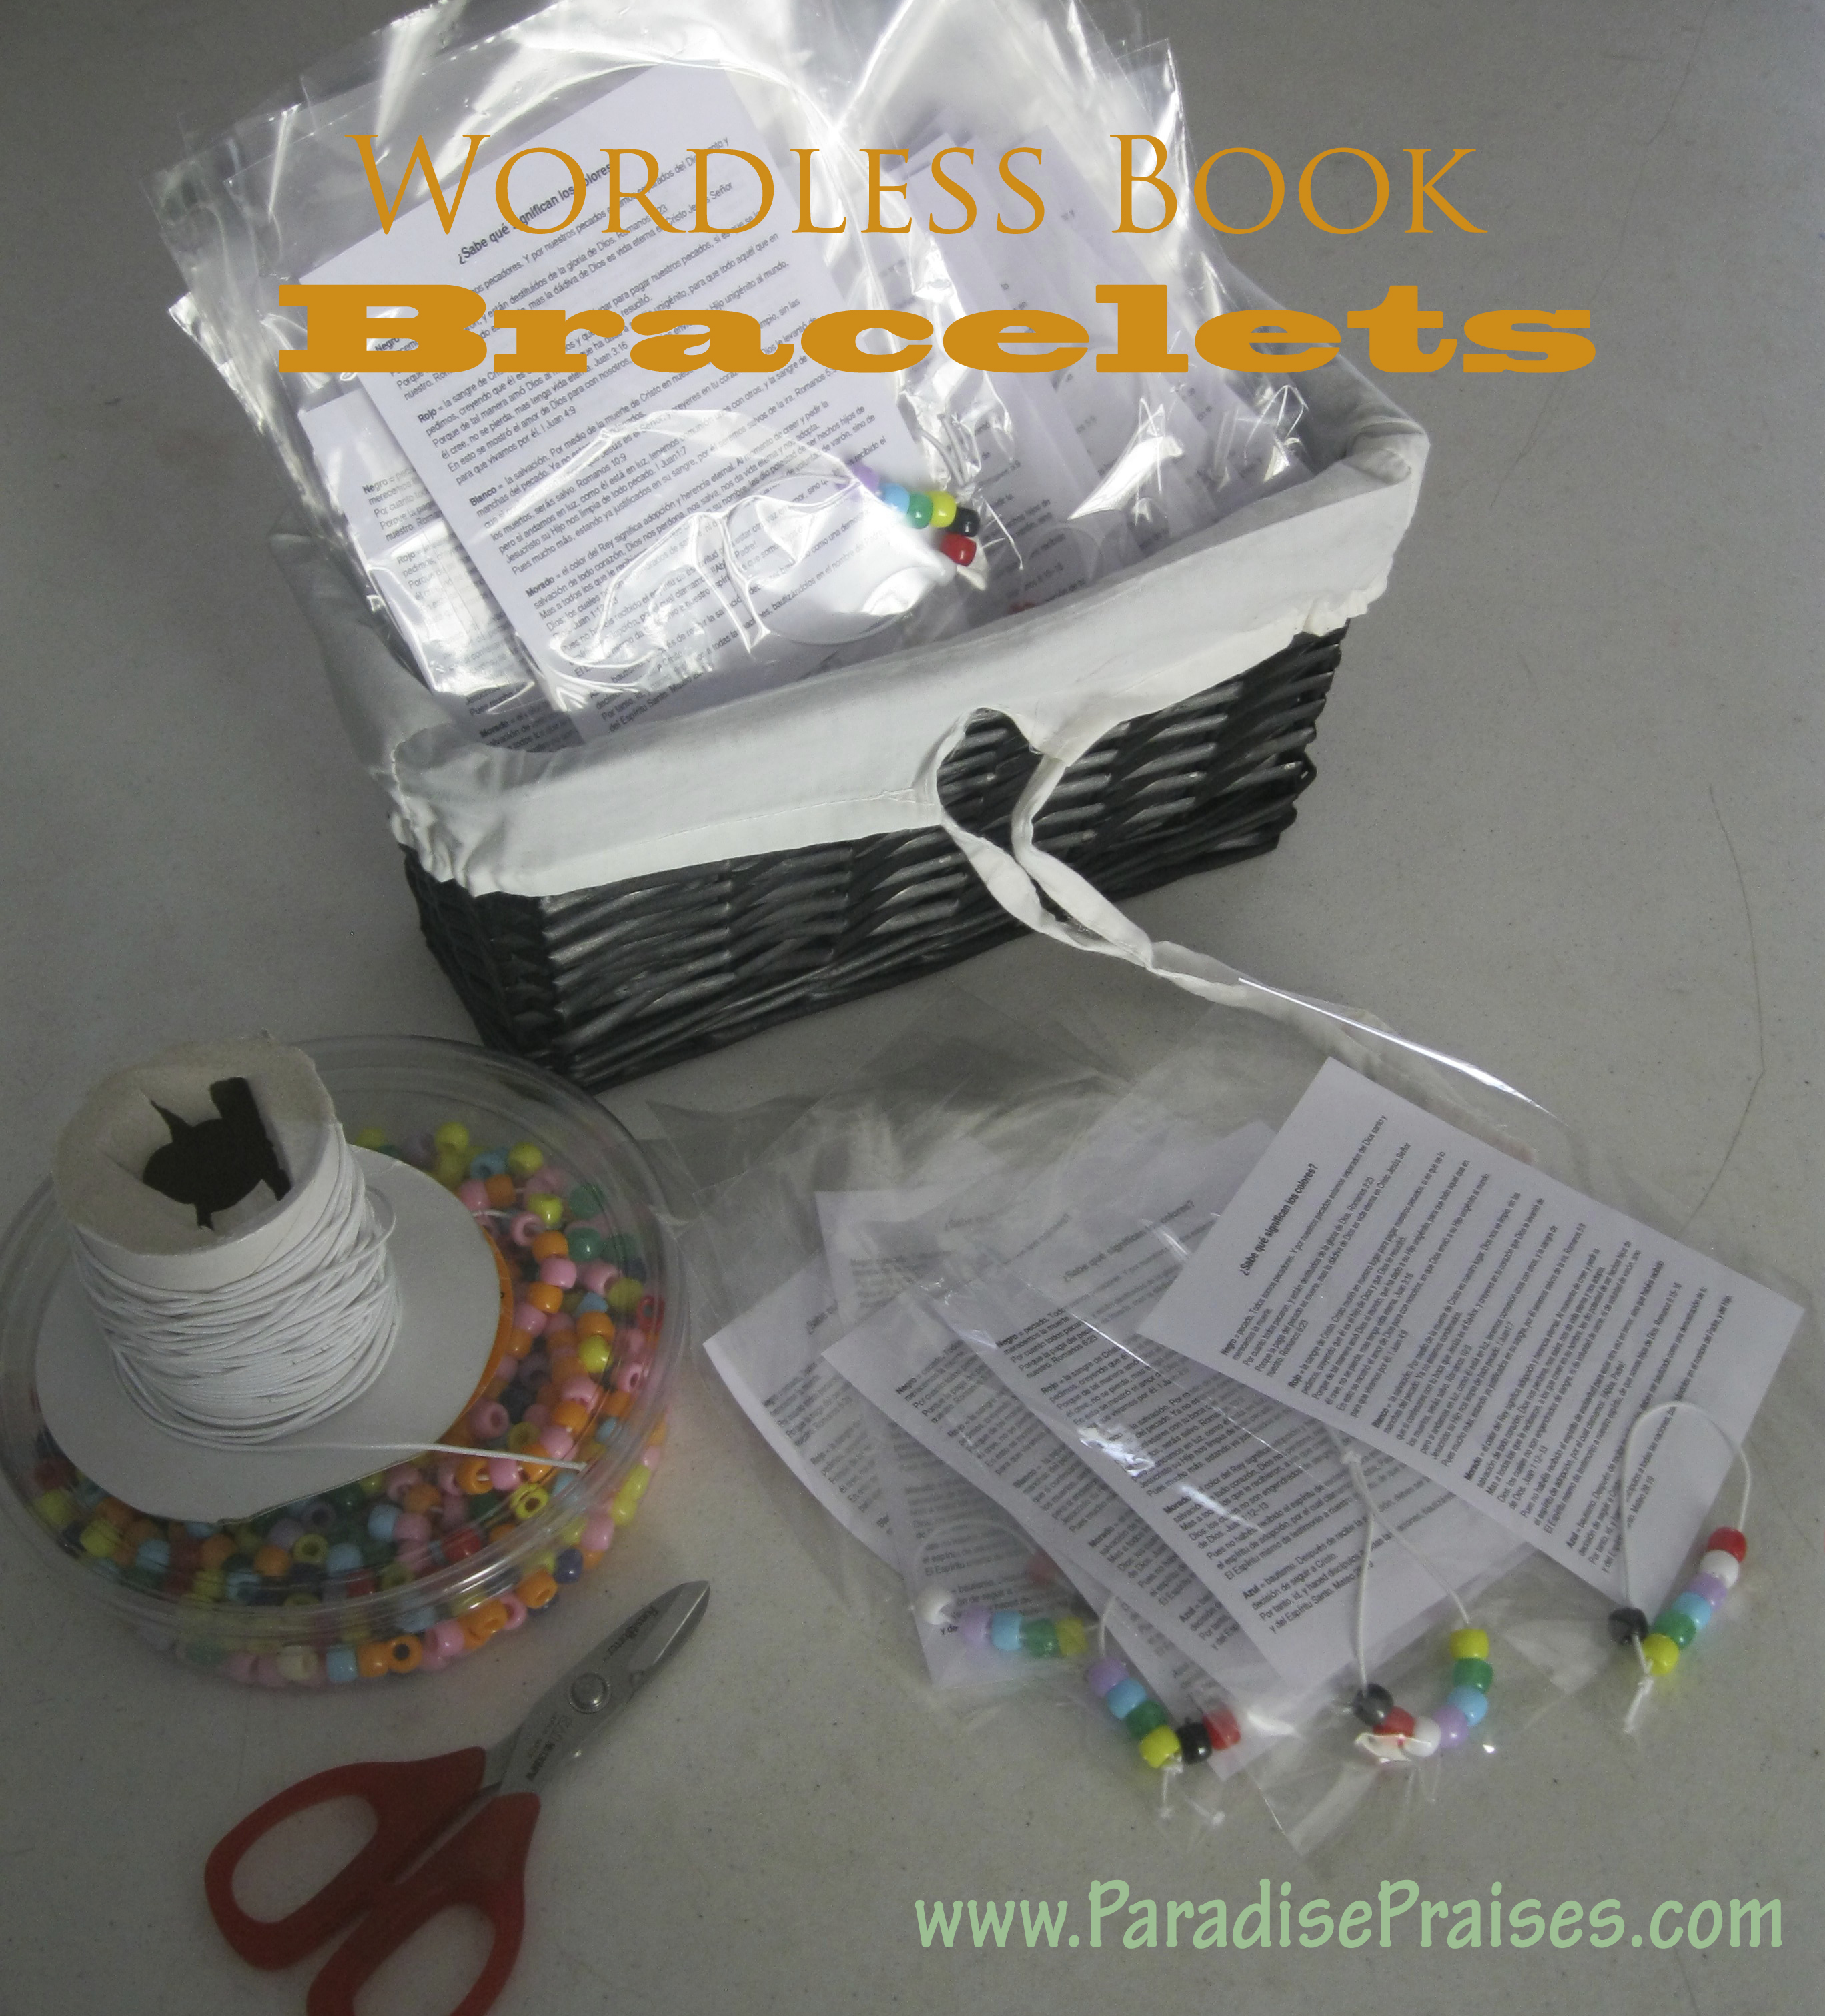 Wordless book bracelets how to on ParadisePraises.com